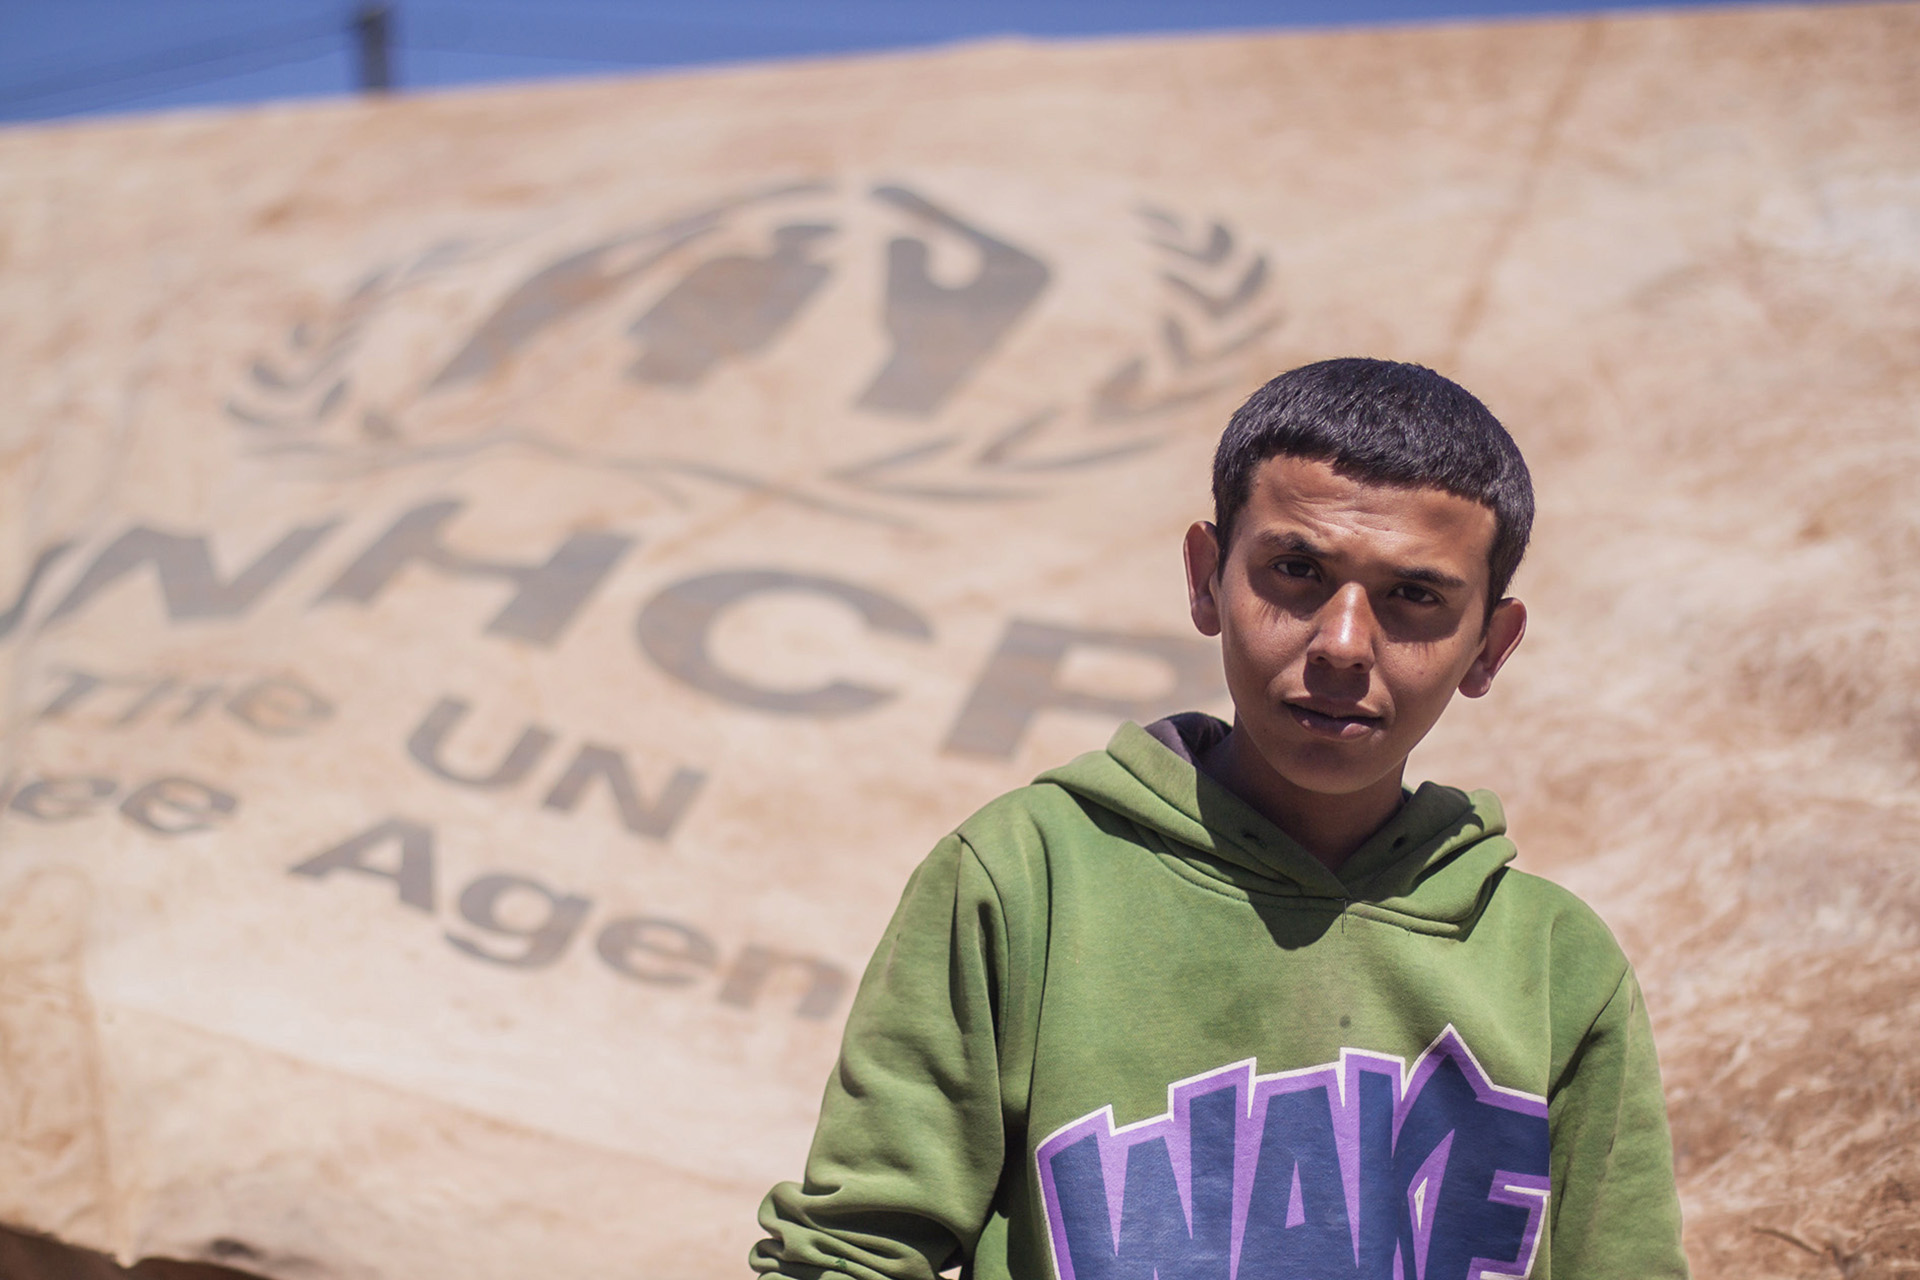 This young lad of 13, a Palestinian refugee, who works by trading recycled goods on the outskirts of Amman stands before his tent. His expression of world weariness appear to defy his tender age.